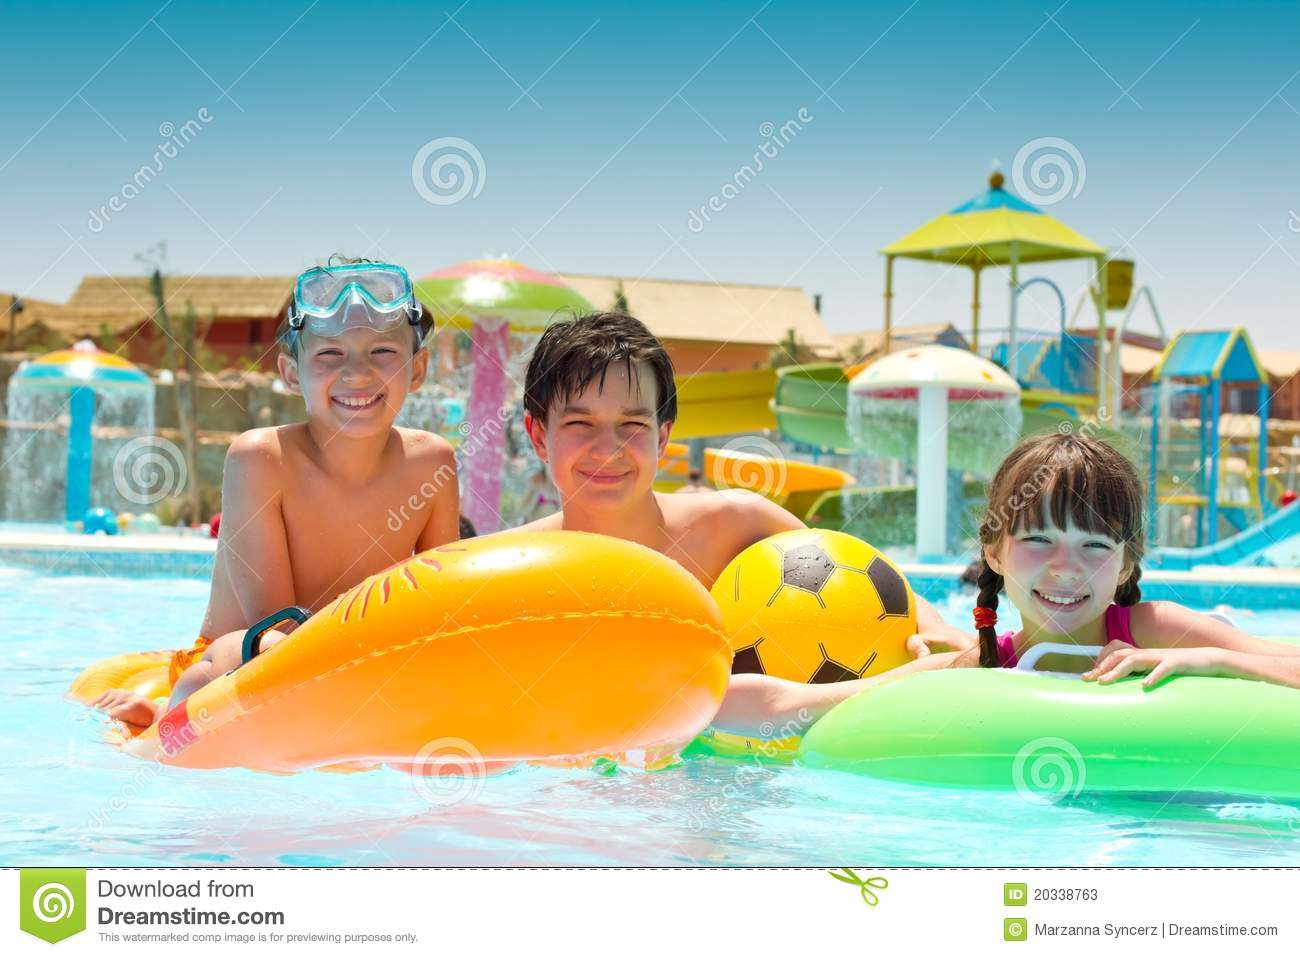 Children Playing In Pool Stock Photos - Image: 20338763